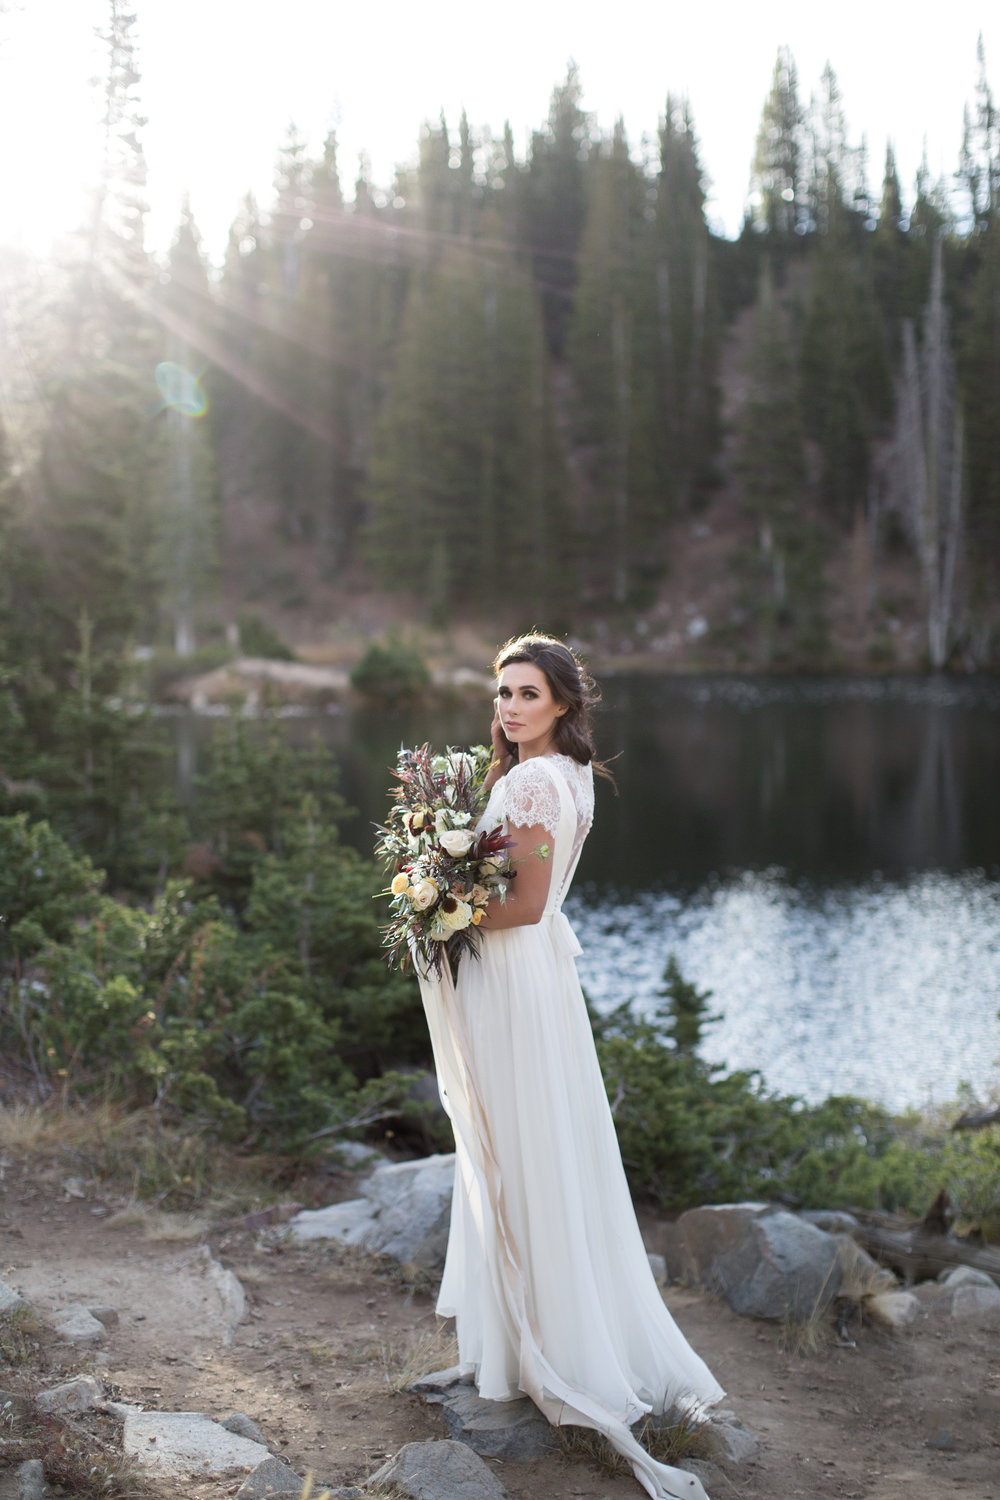 UtahValleyBrideShootTR2016 (92 of 110).jpg